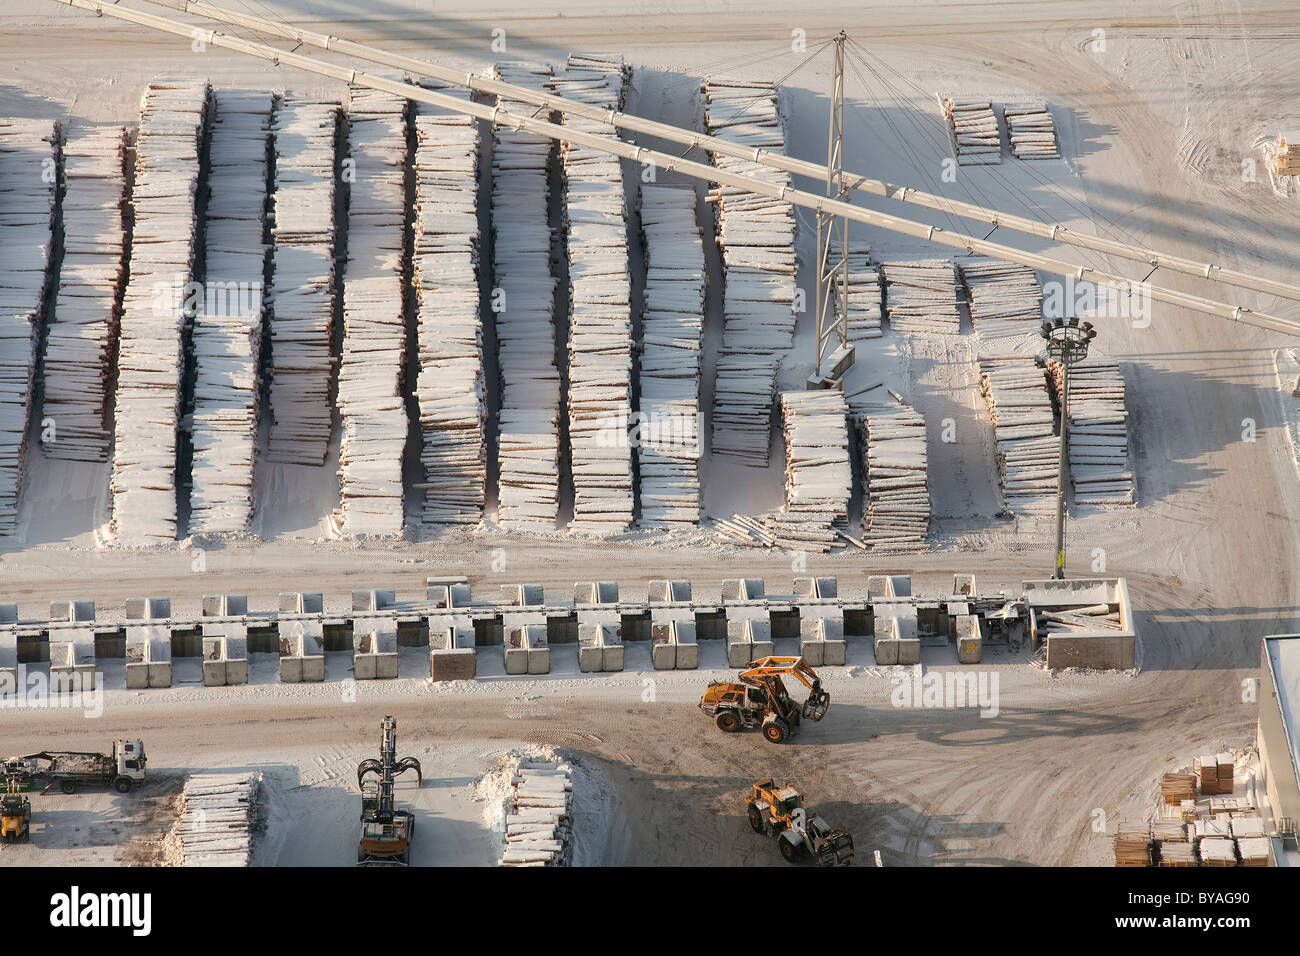 Aerial view, wood piles, sawmill, Egger Holzwerkstoffe Brilon GmbH & Co. KG, Brilon, North Rhine-Westphalia, - Stock Image